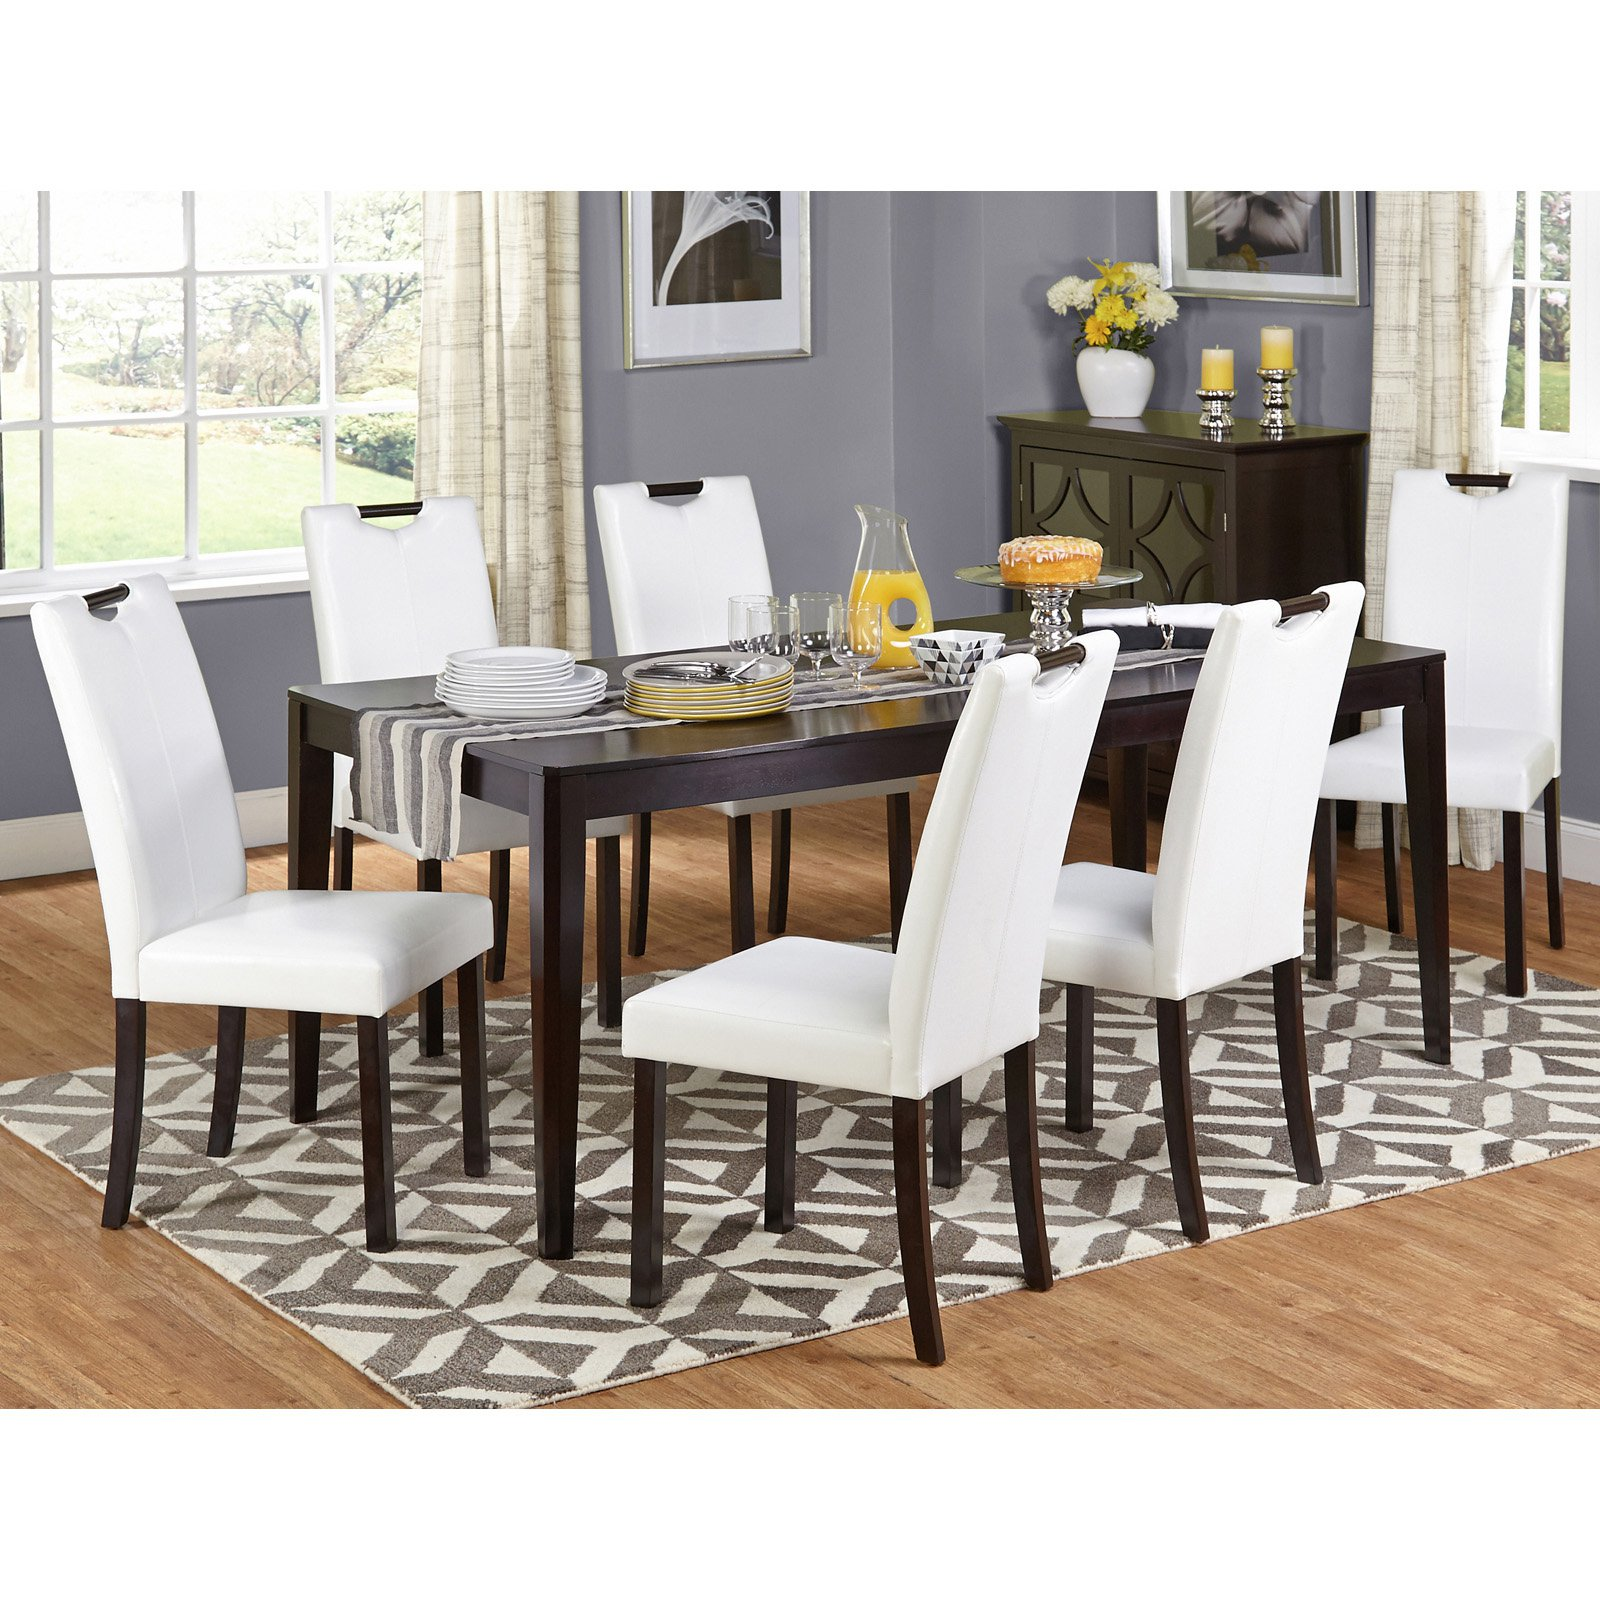 7 Pc Dining Room Set Home Design Ideas And Pictures